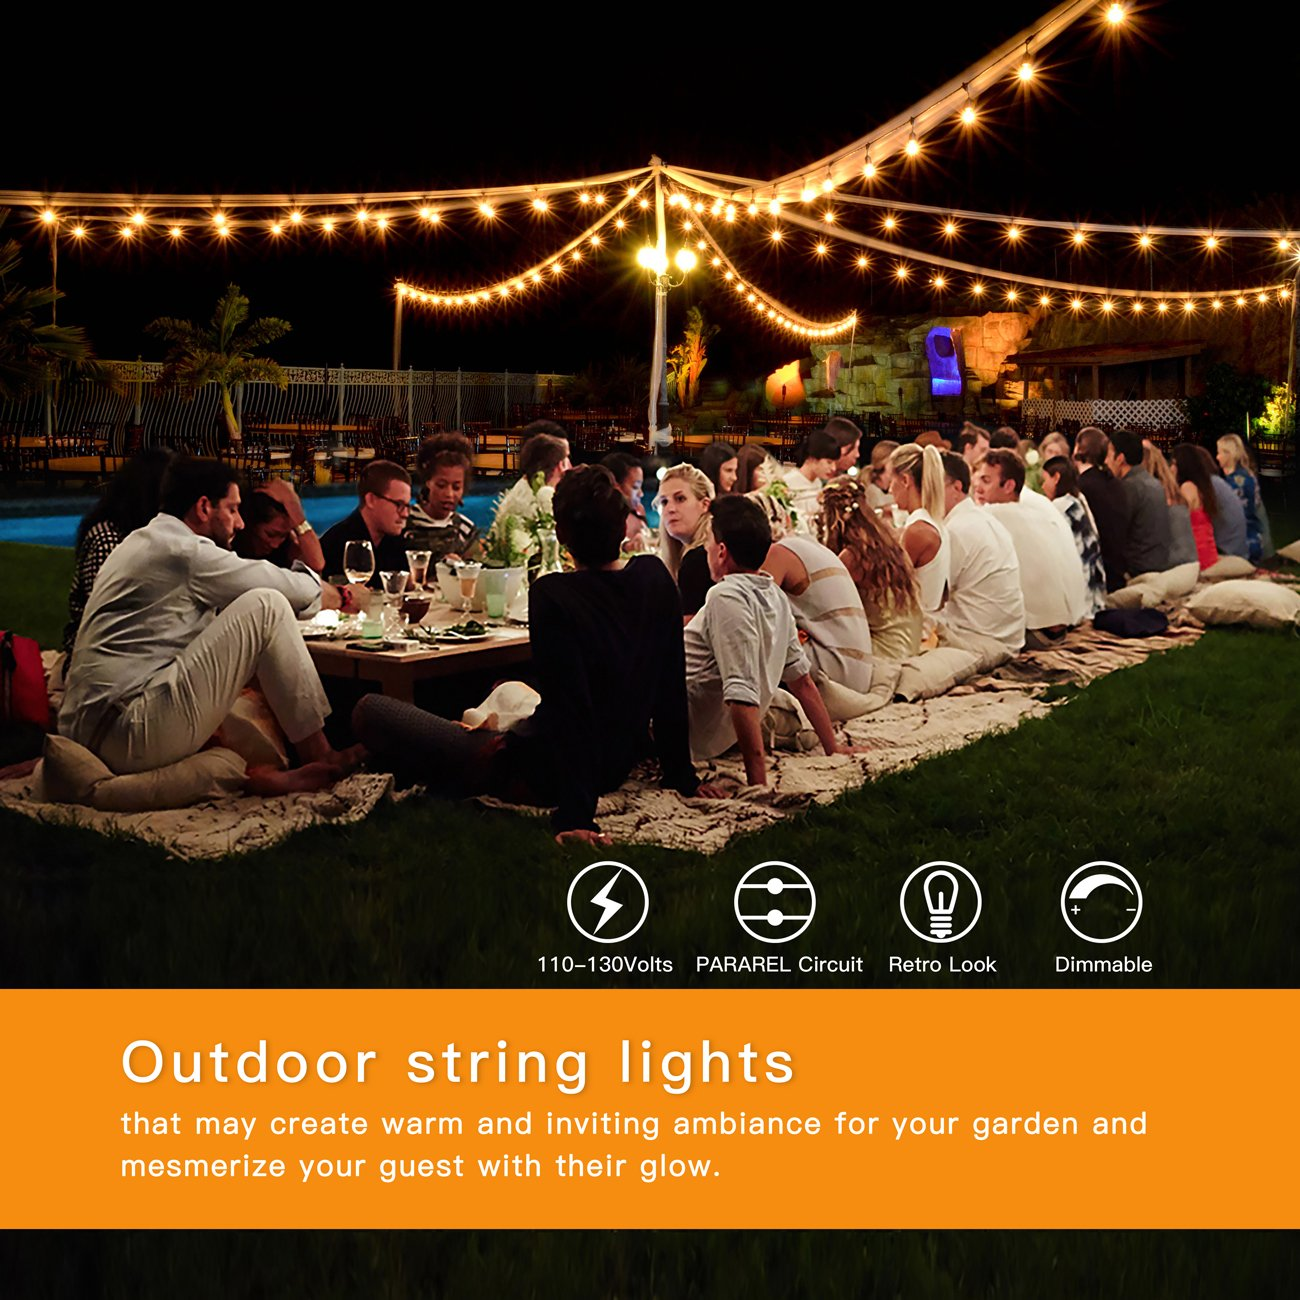 2-Pack 48Ft Heavy Duty Outdoor Patio String lights, Edison Vintage Dimmable 11S14 Bulbs w/ Hanging Sockets, Commercial Grade Weatherproof Market Cafe Lights for Bistro Backyard Pergola Party, Blk by SHINE HAI (Image #6)